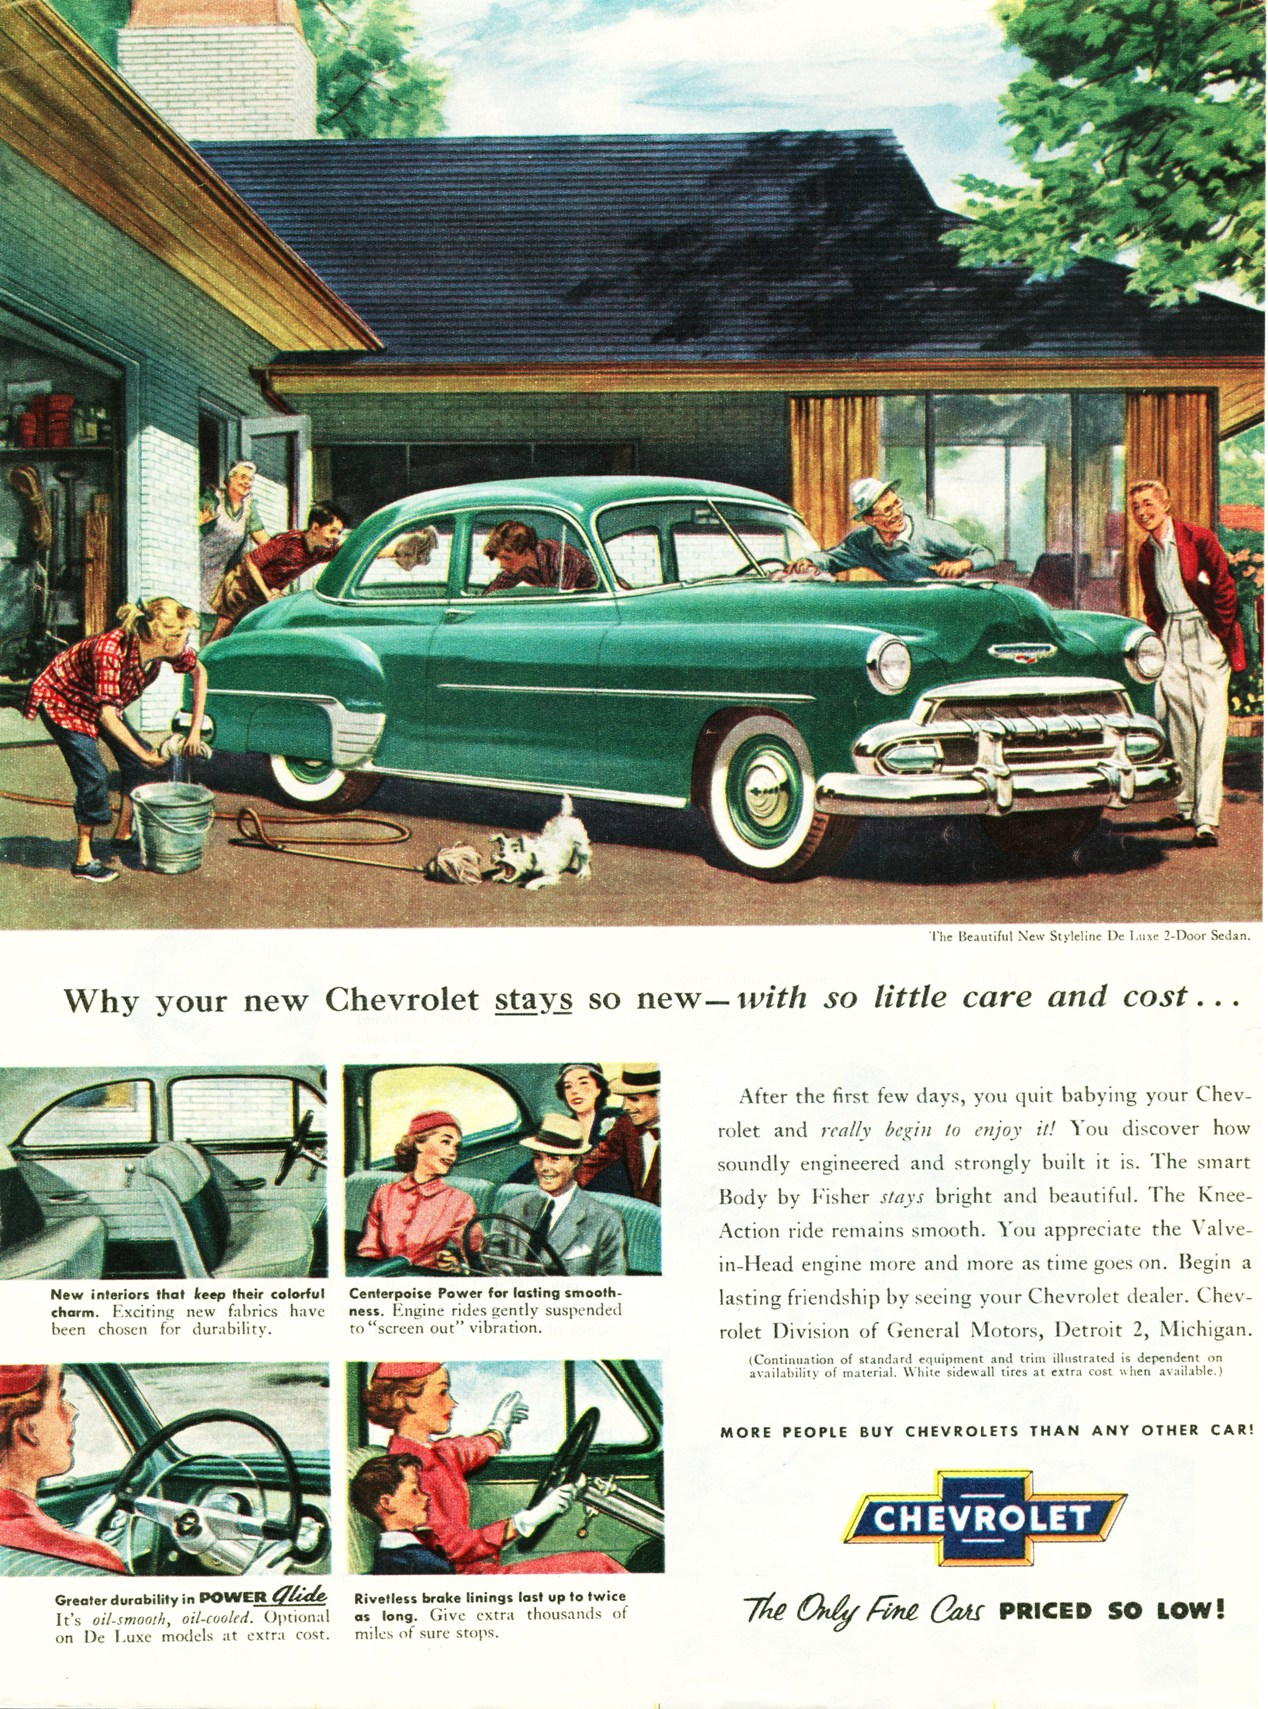 1952 Chevrolet Styleline DeLuxe 2-Door Sedan | Flickr - Photo Sharing!